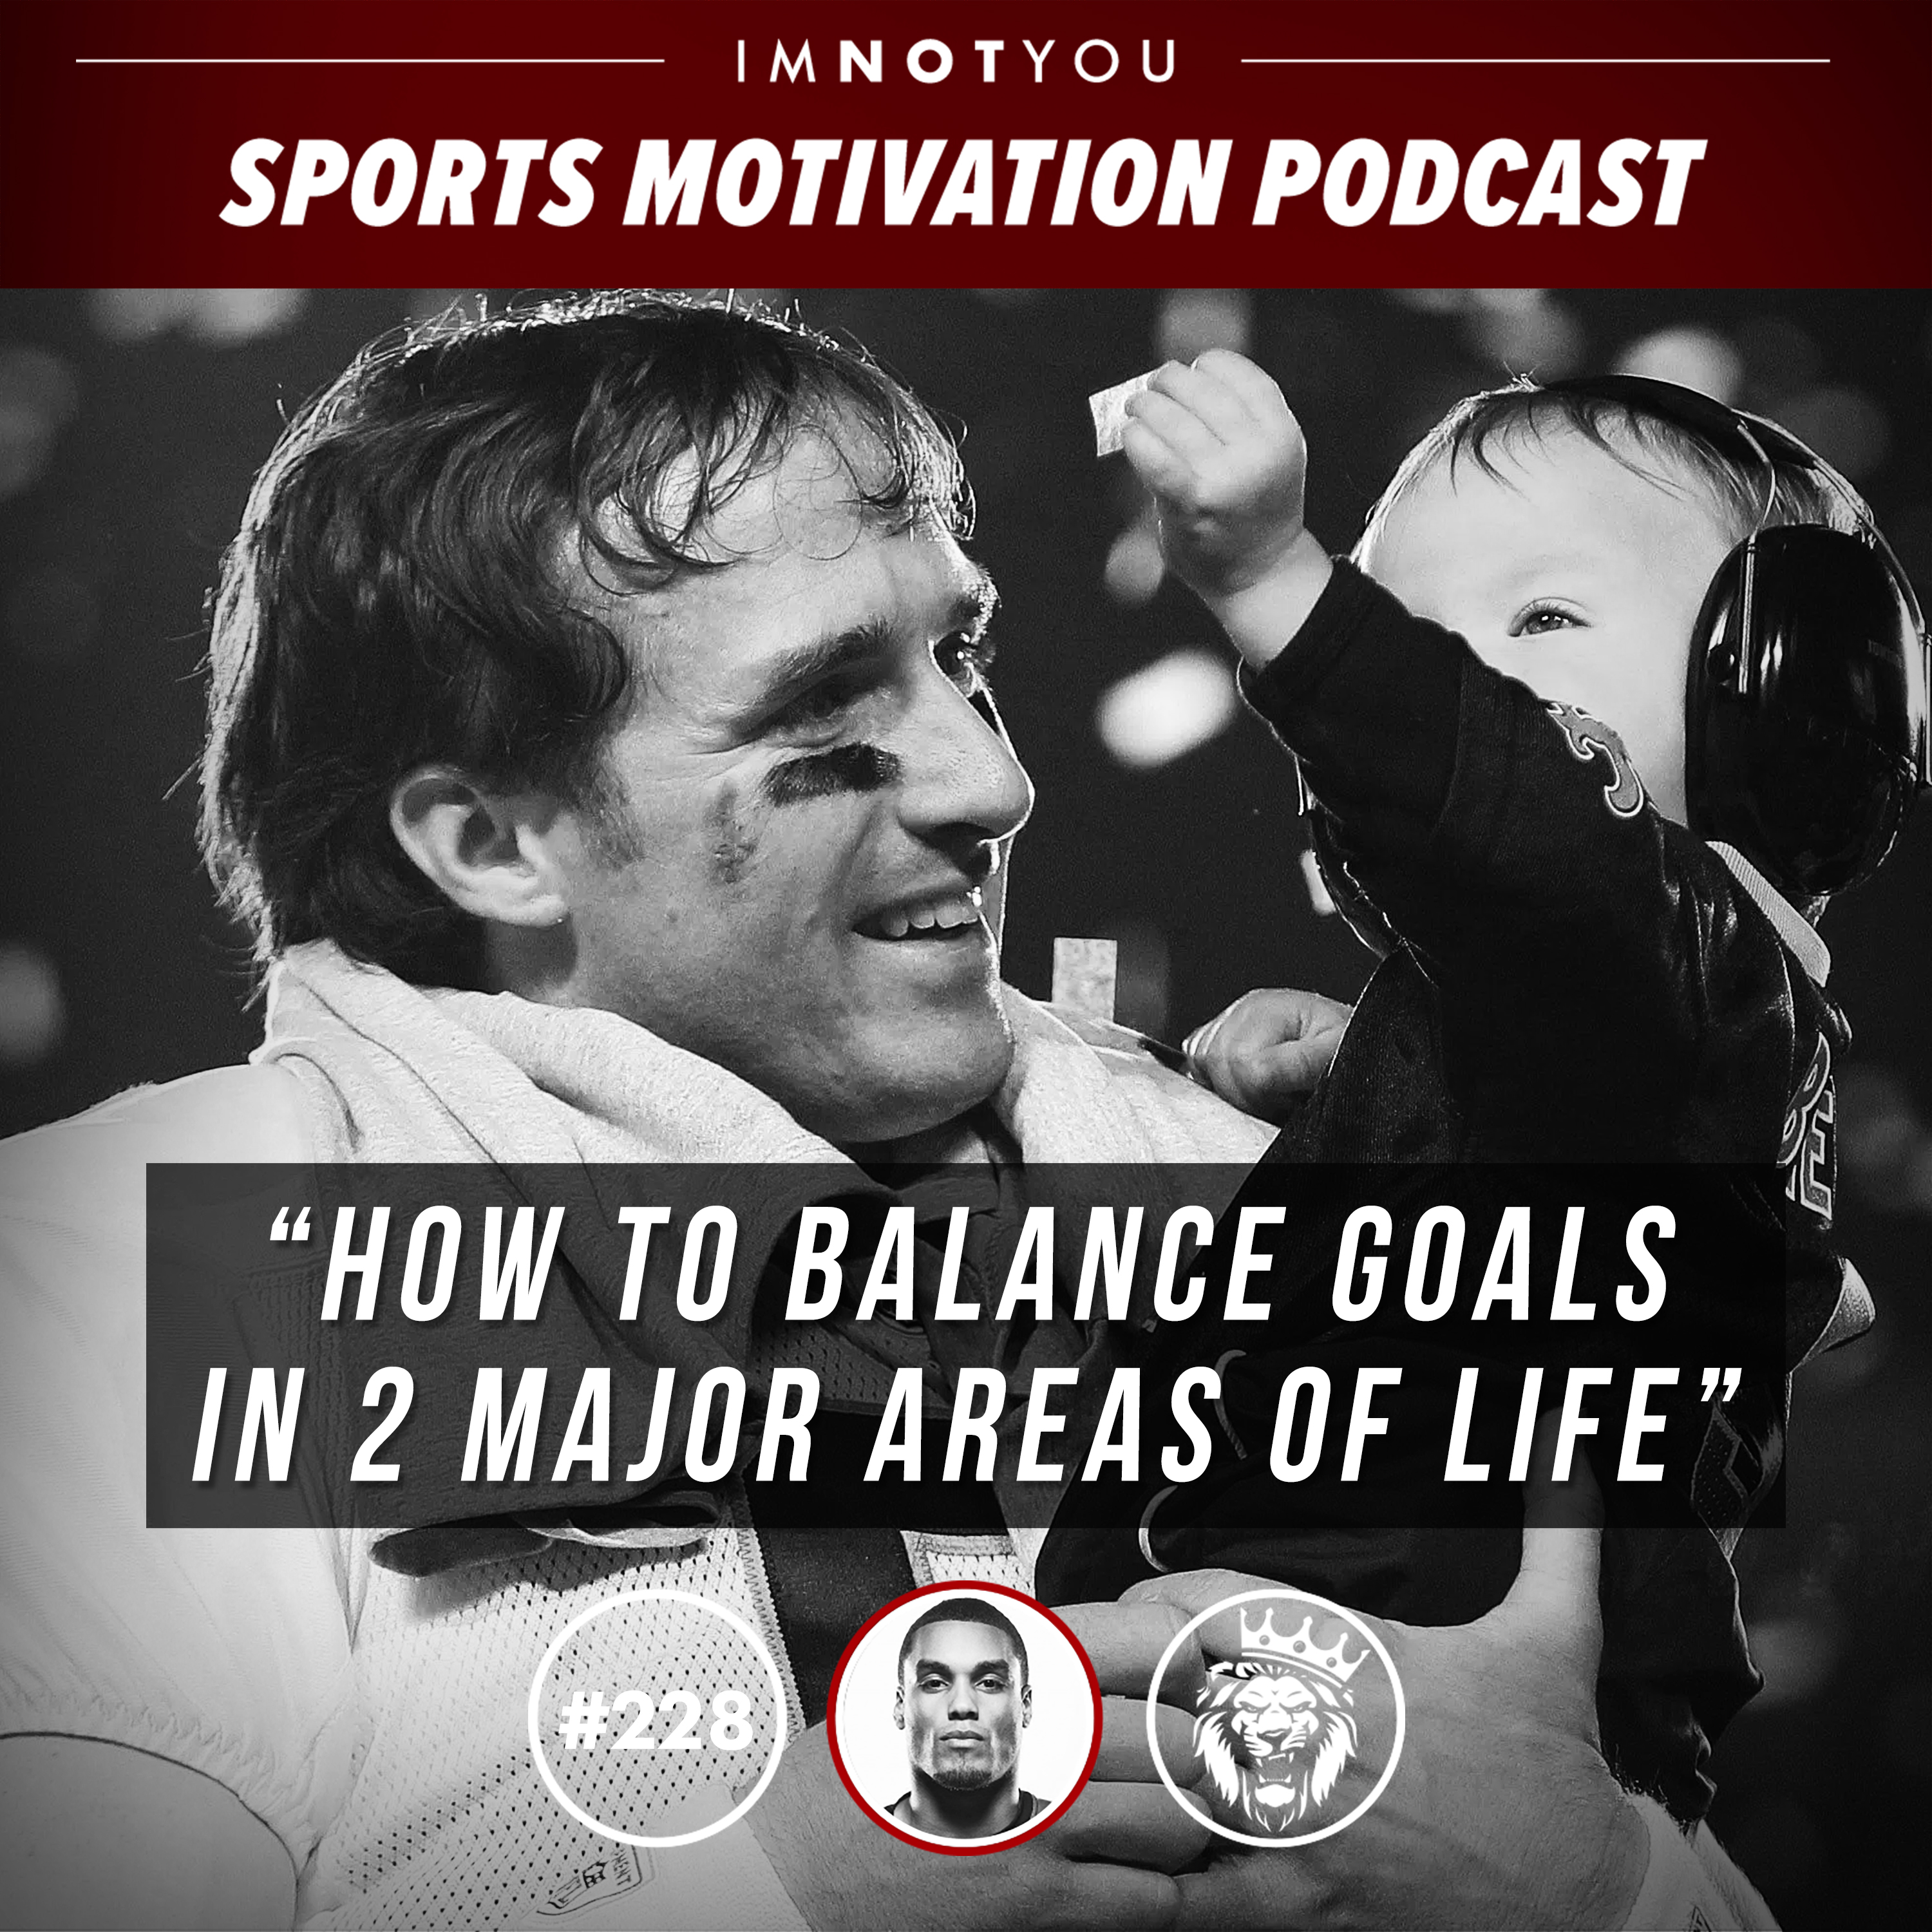 228: How to balance goals in 2 major areas in life